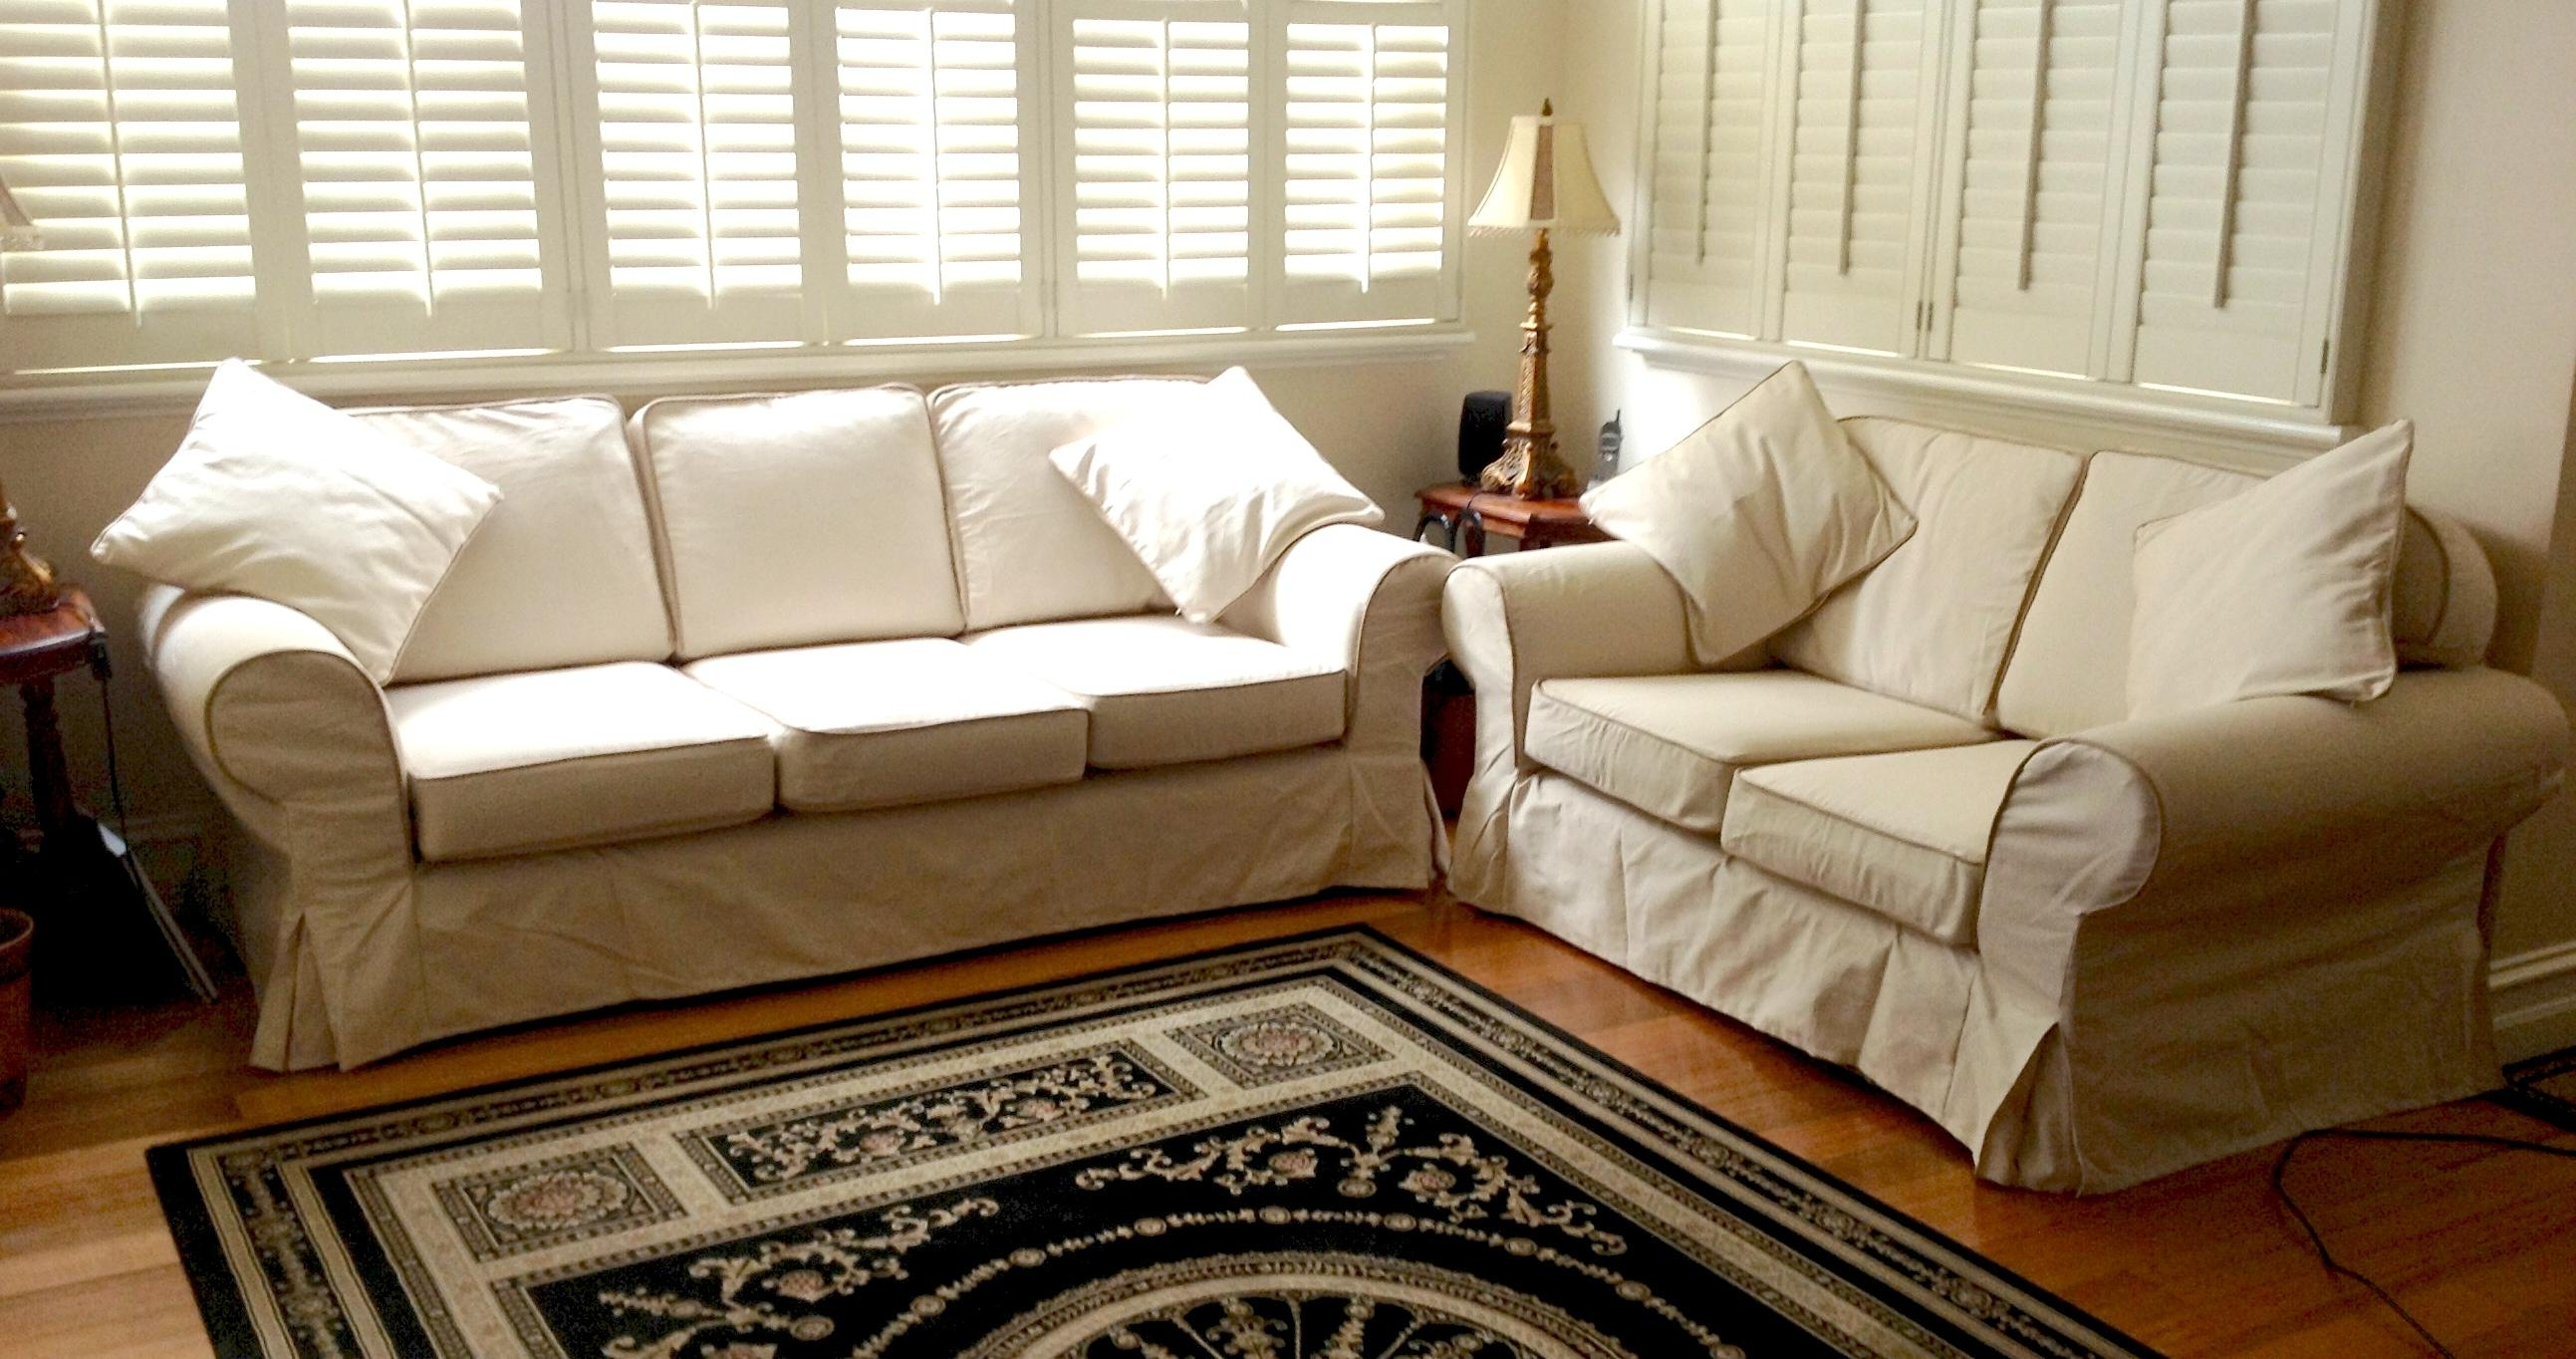 Custom Slipcovers And Couch Cover For Any Sofa Online Pertaining To Canvas Slipcover Sofas (Image 5 of 20)